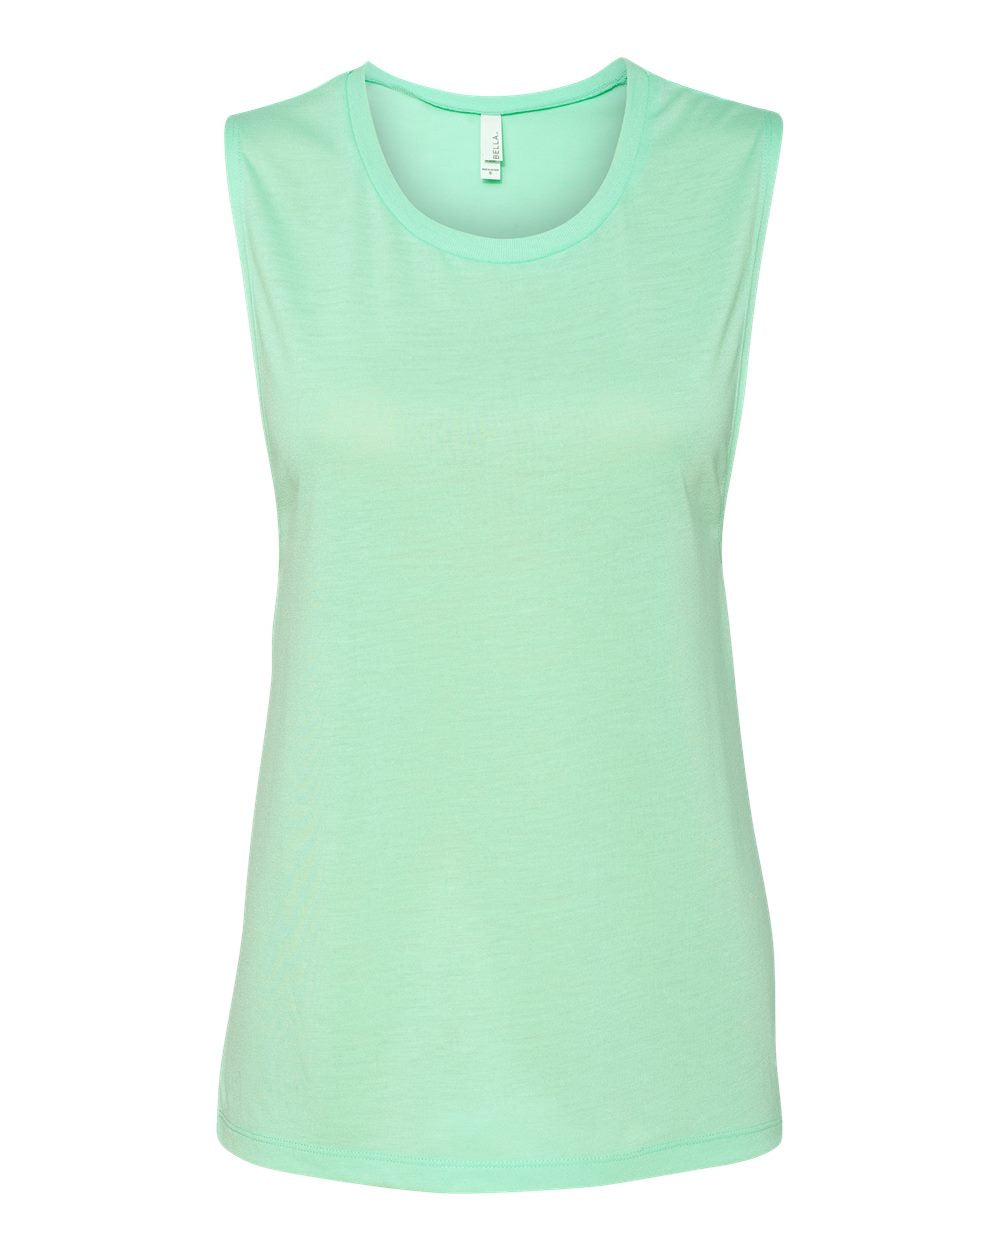 Roc City Local Women's Muscle Tanks